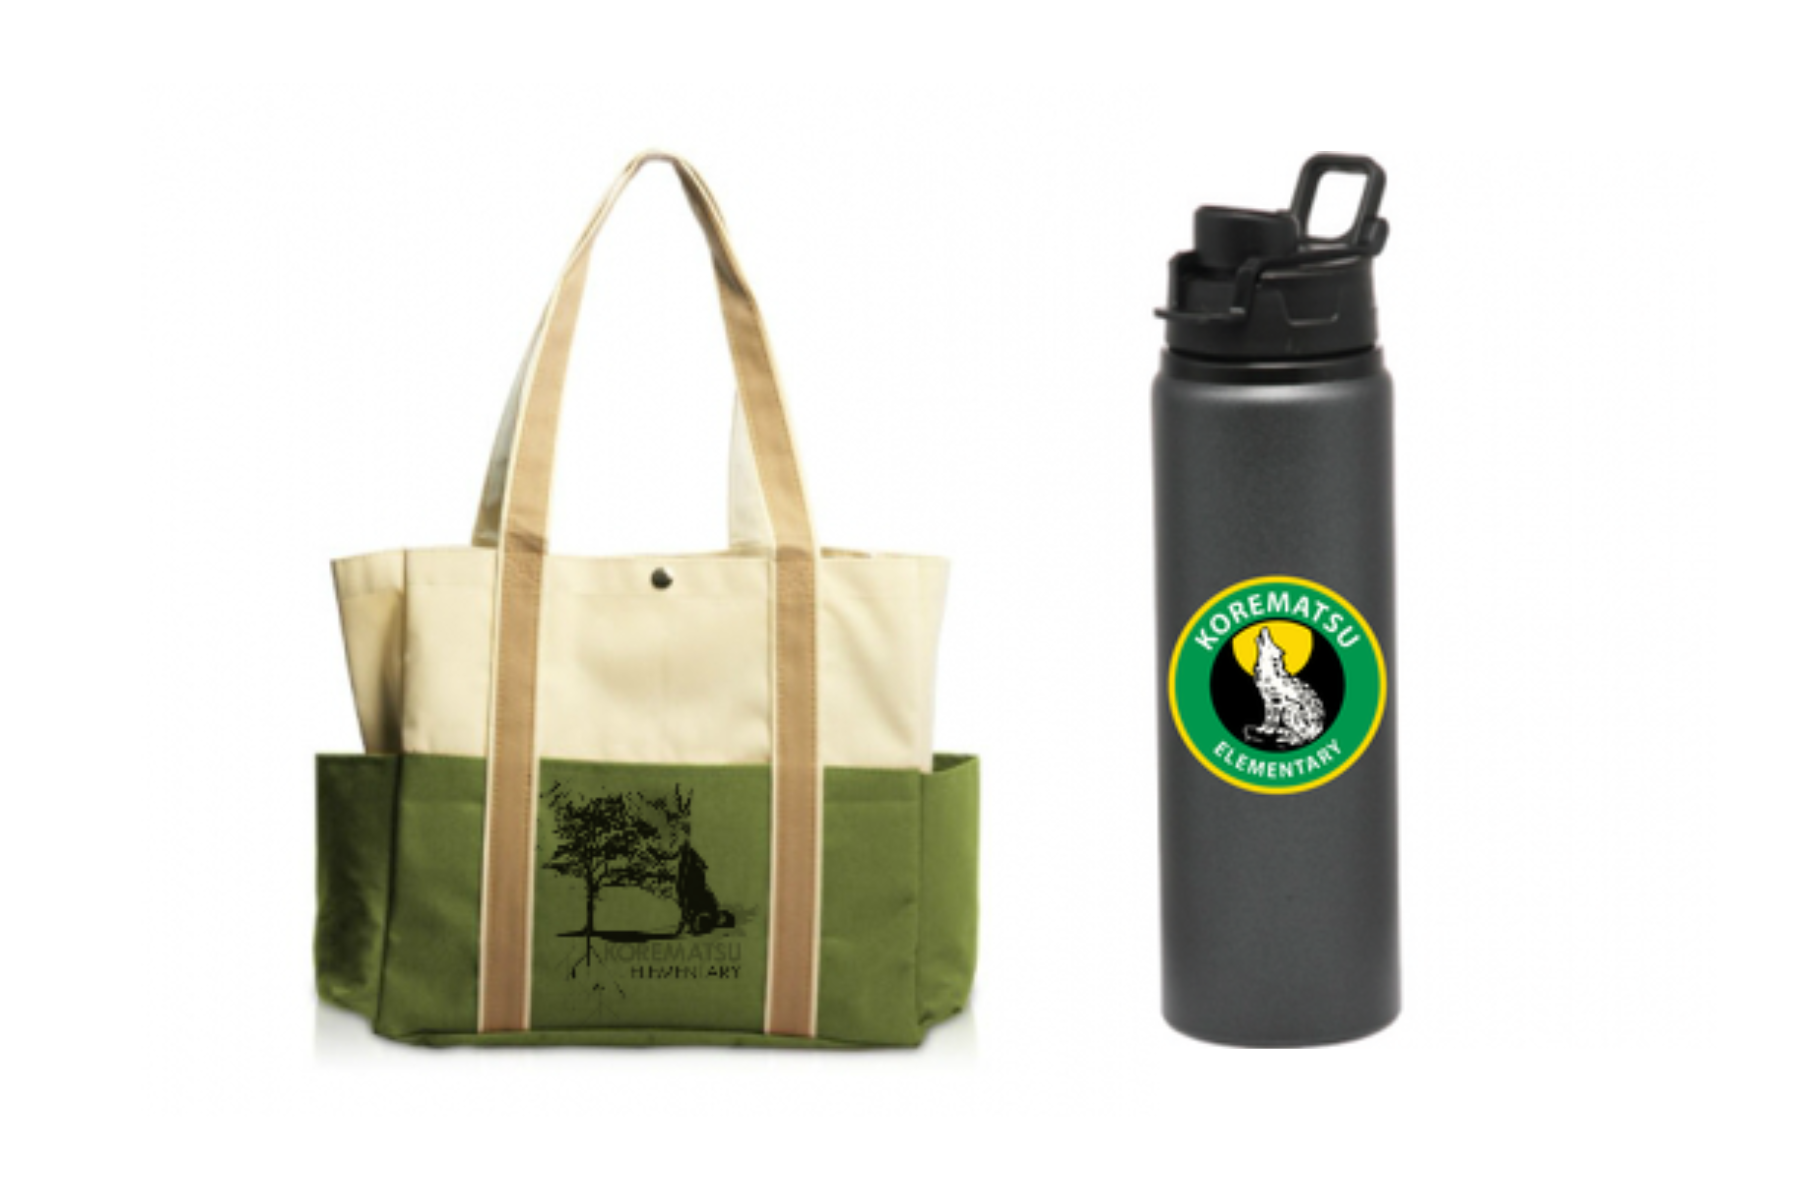 bag and water bottle